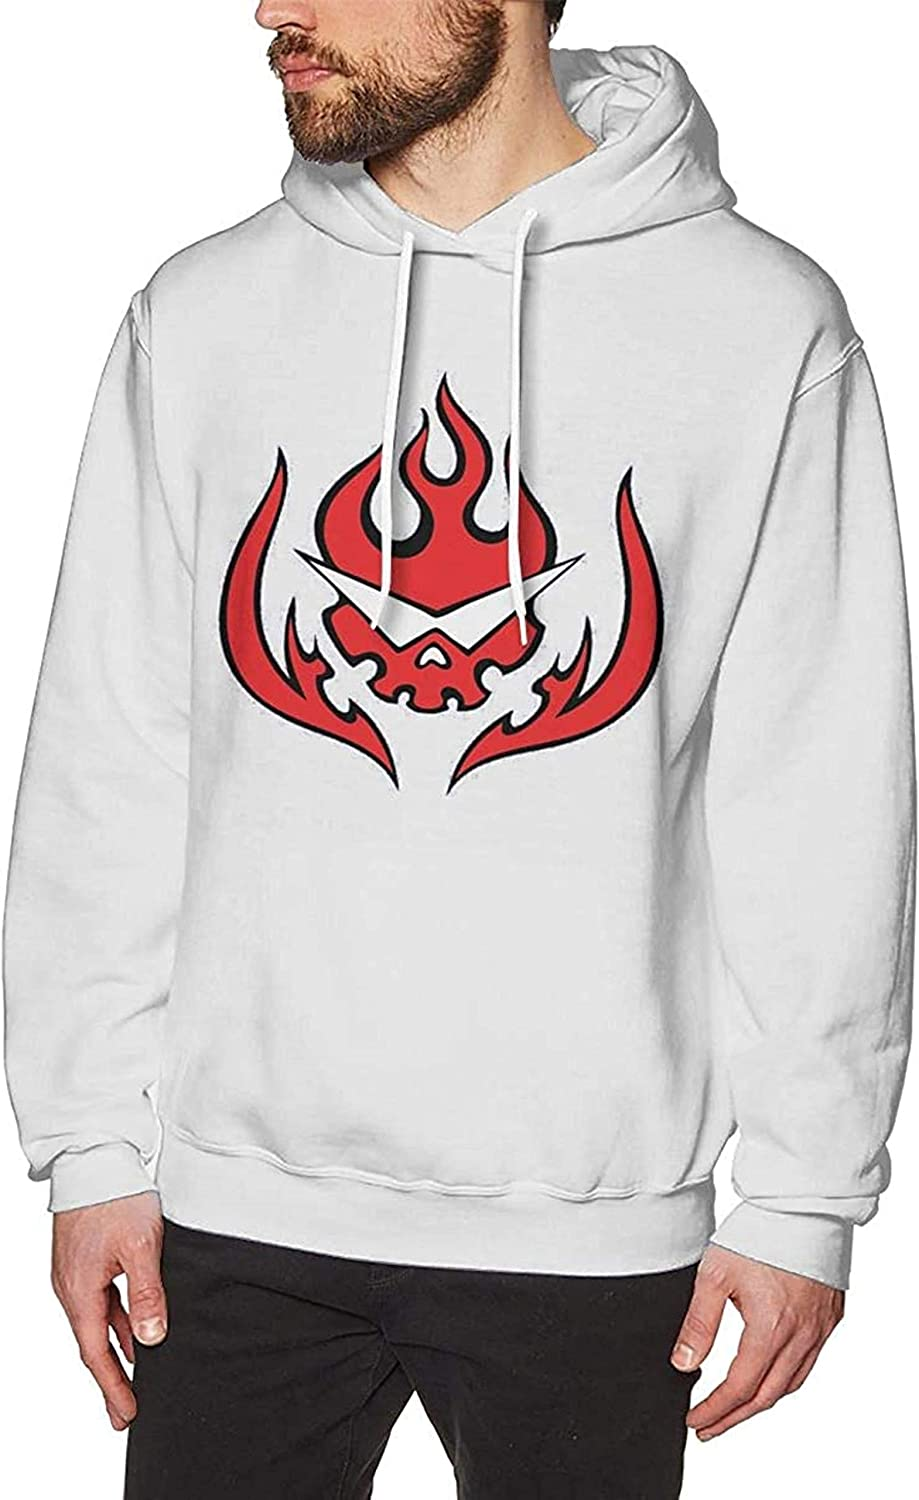 Tengen Toppa Gurren Lagann - Team Dai Gurren Logo Crewneck Long Sleeve Sweatshirt Pullover Hoodies for Men White